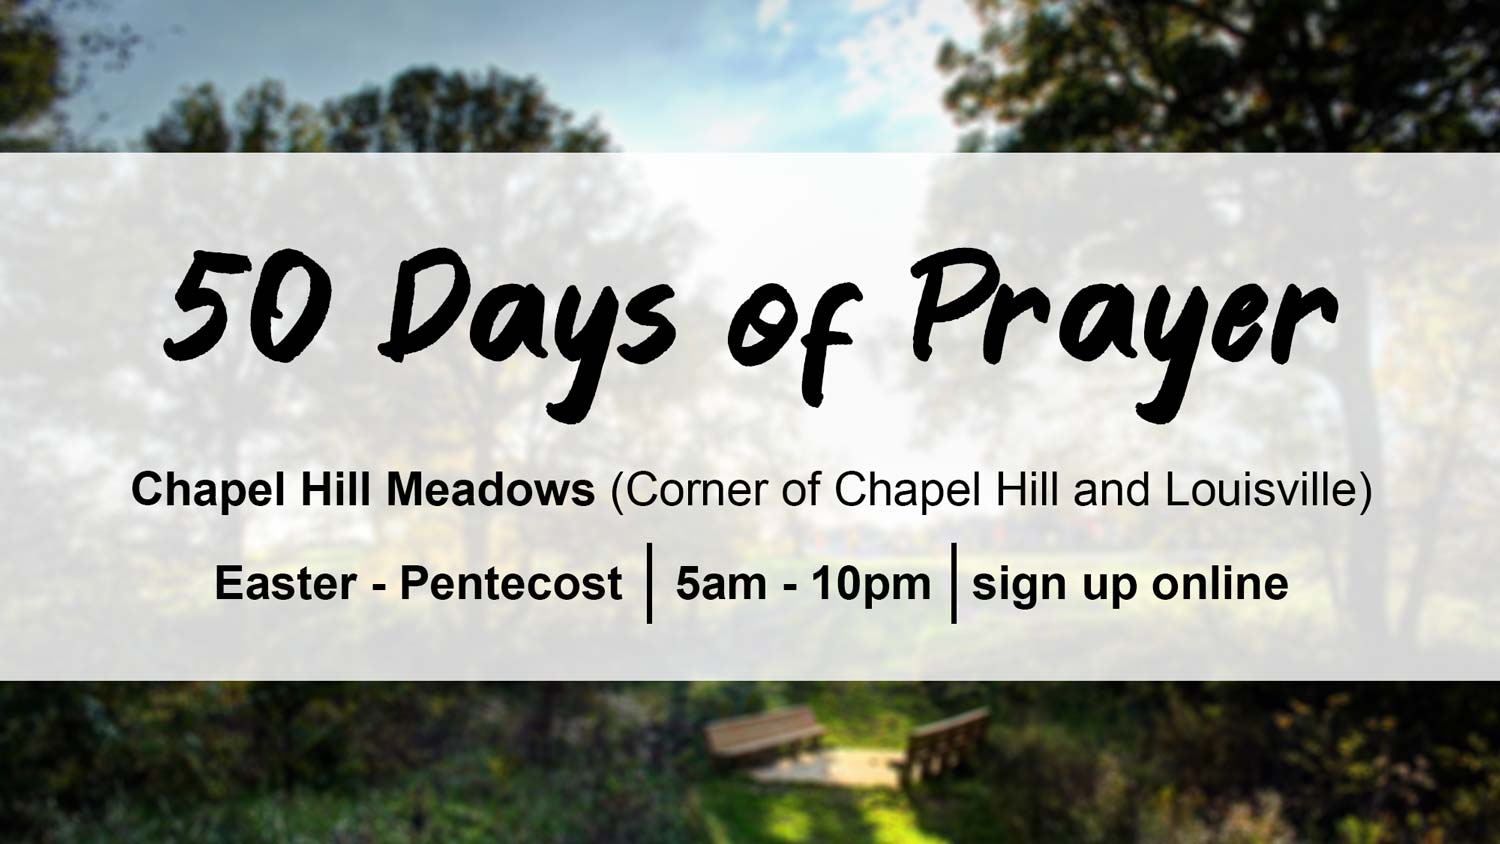 50 Days of Prayer from Easter to Pentecost